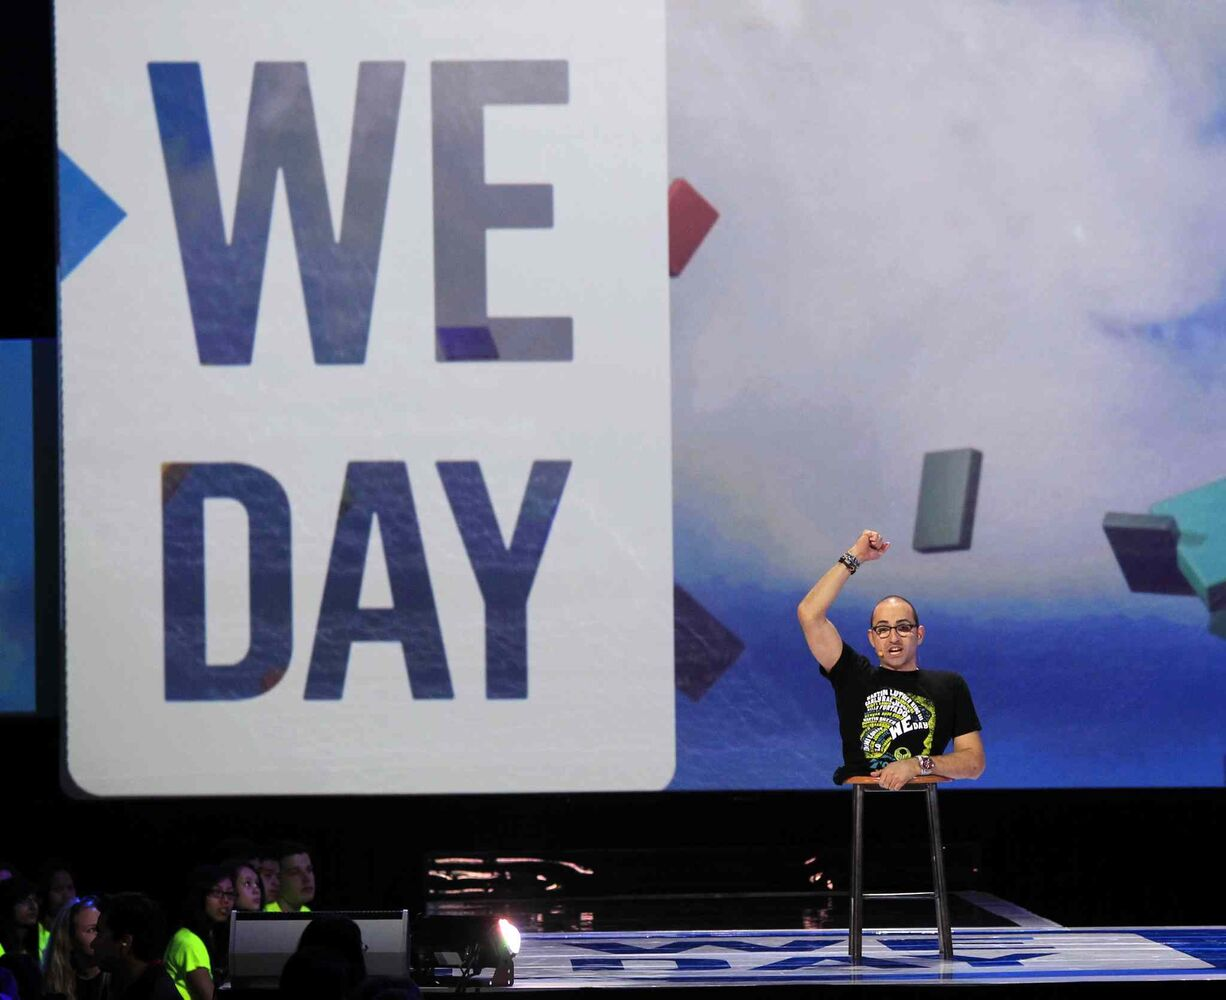 Inspirational speaker Spencer West addresses the crowd at We Day.